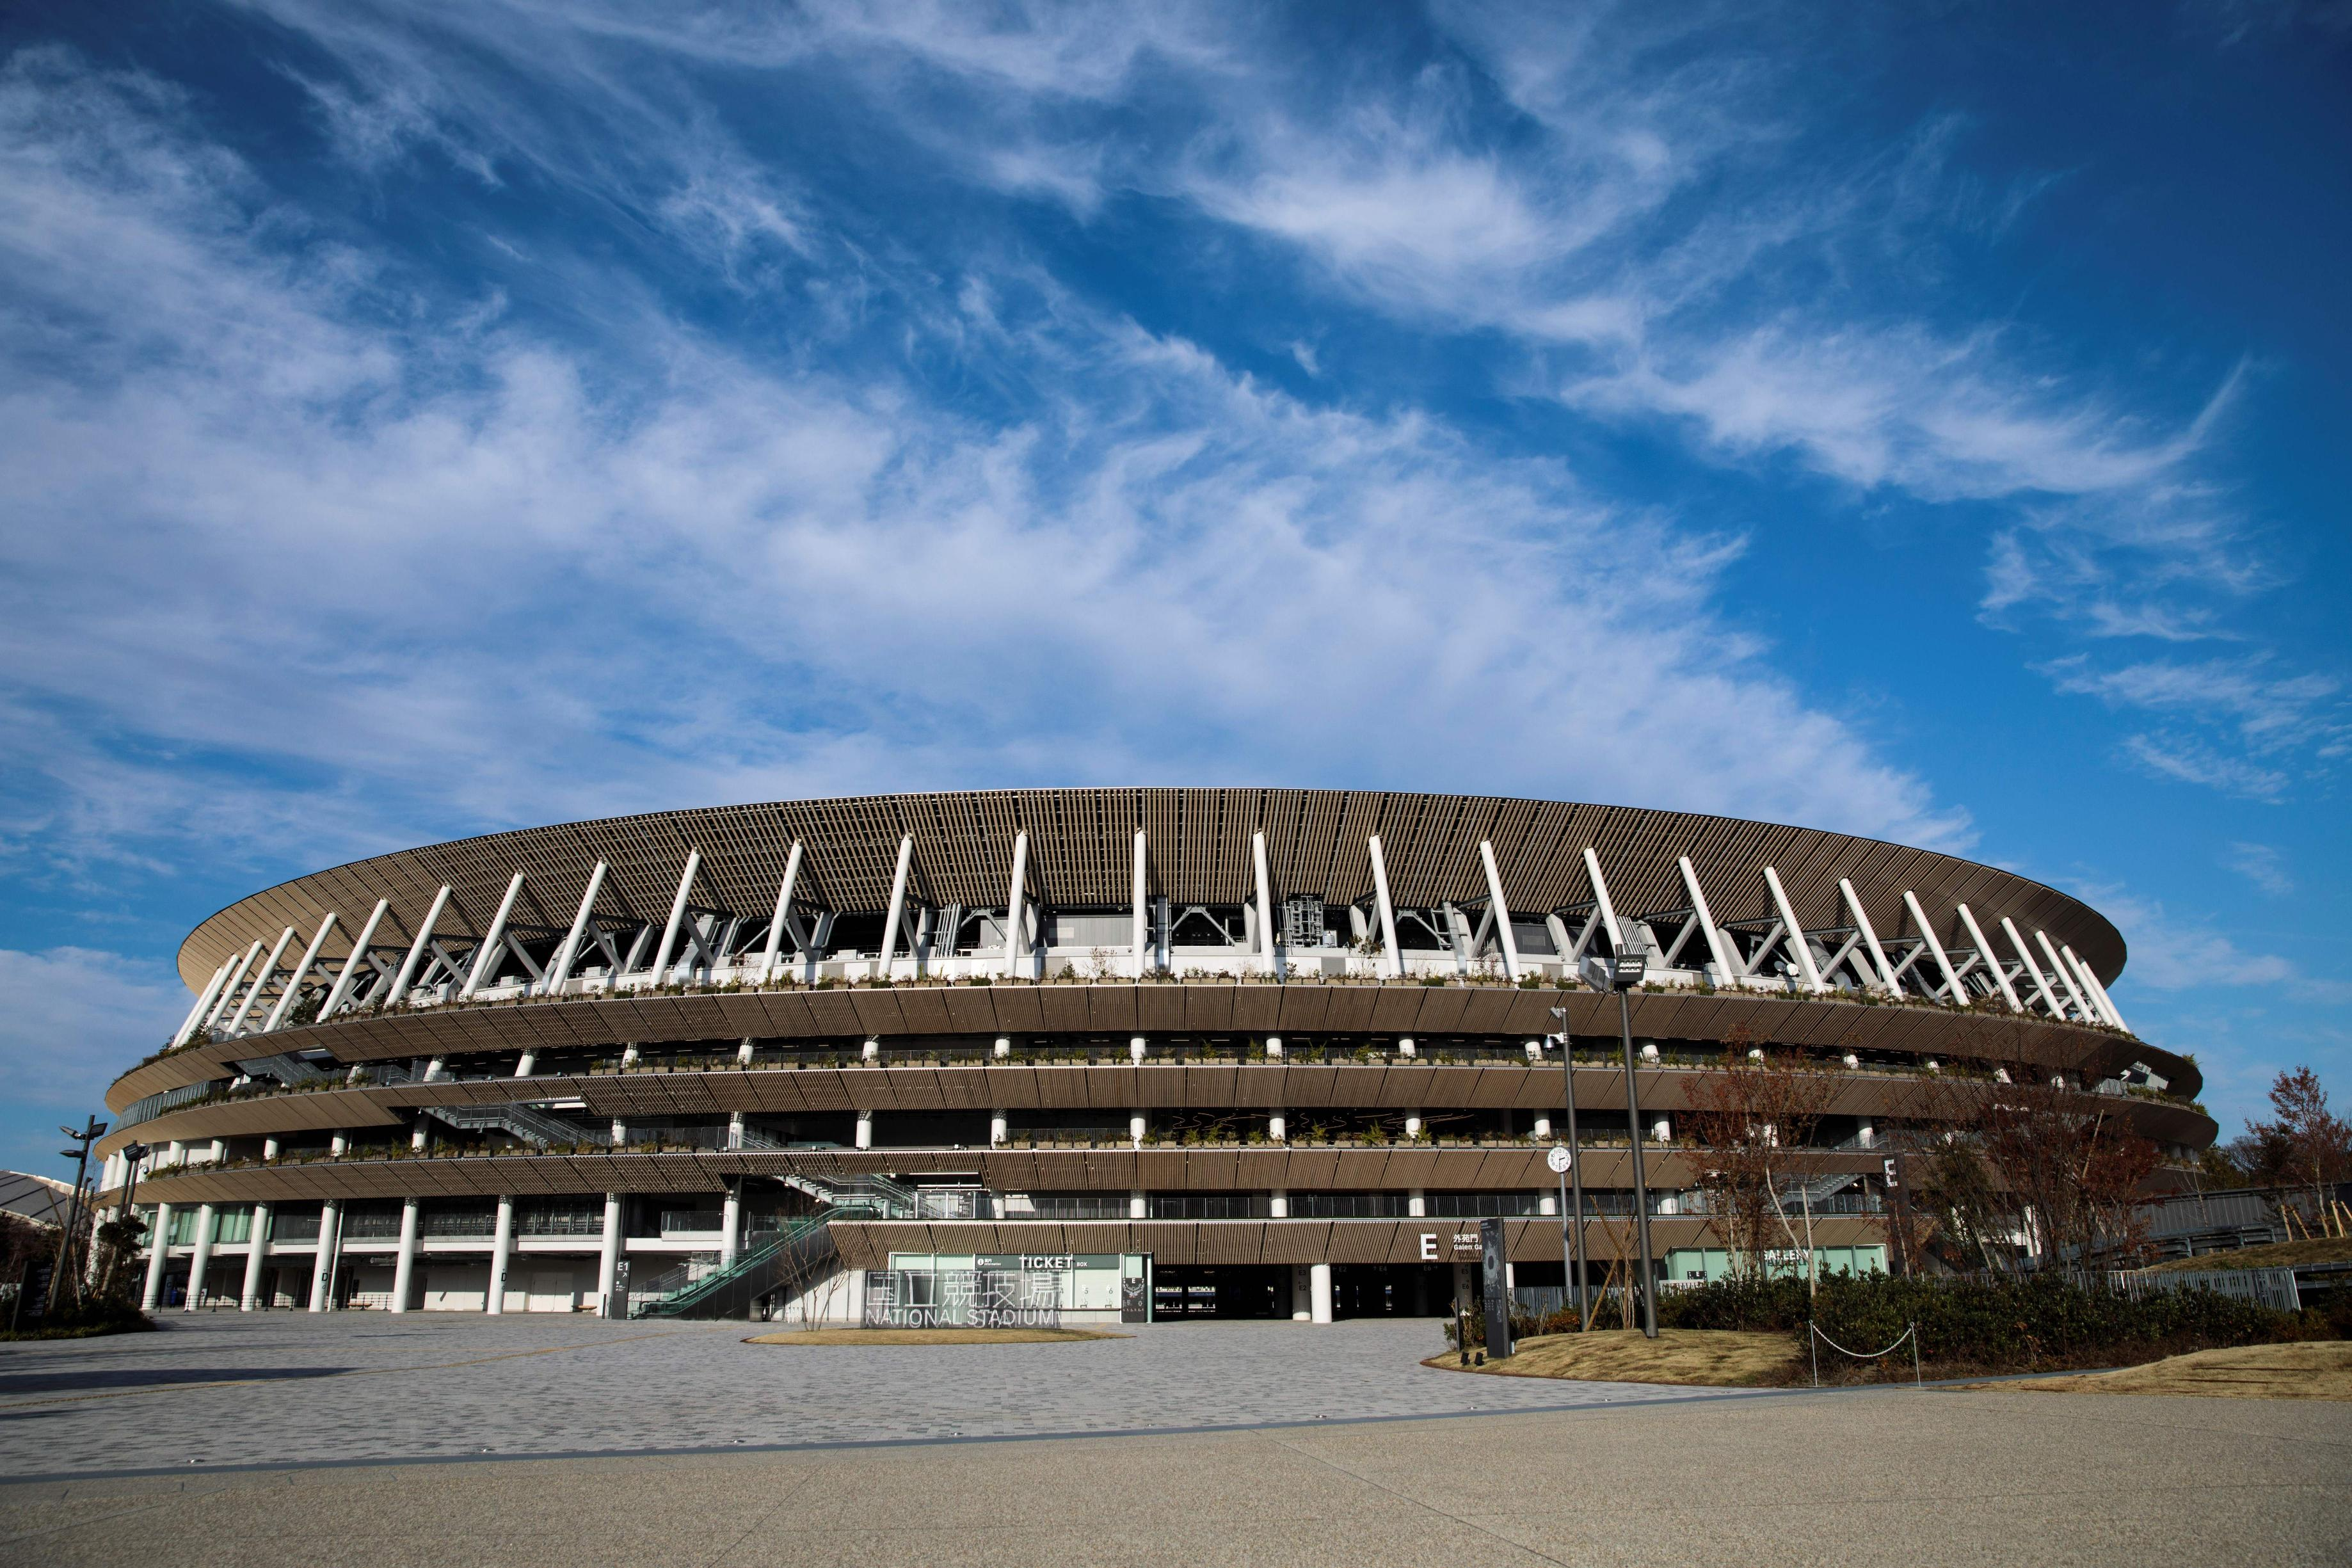 Tokyo Olympic Games: Opening and closing ceremonies to be pared back